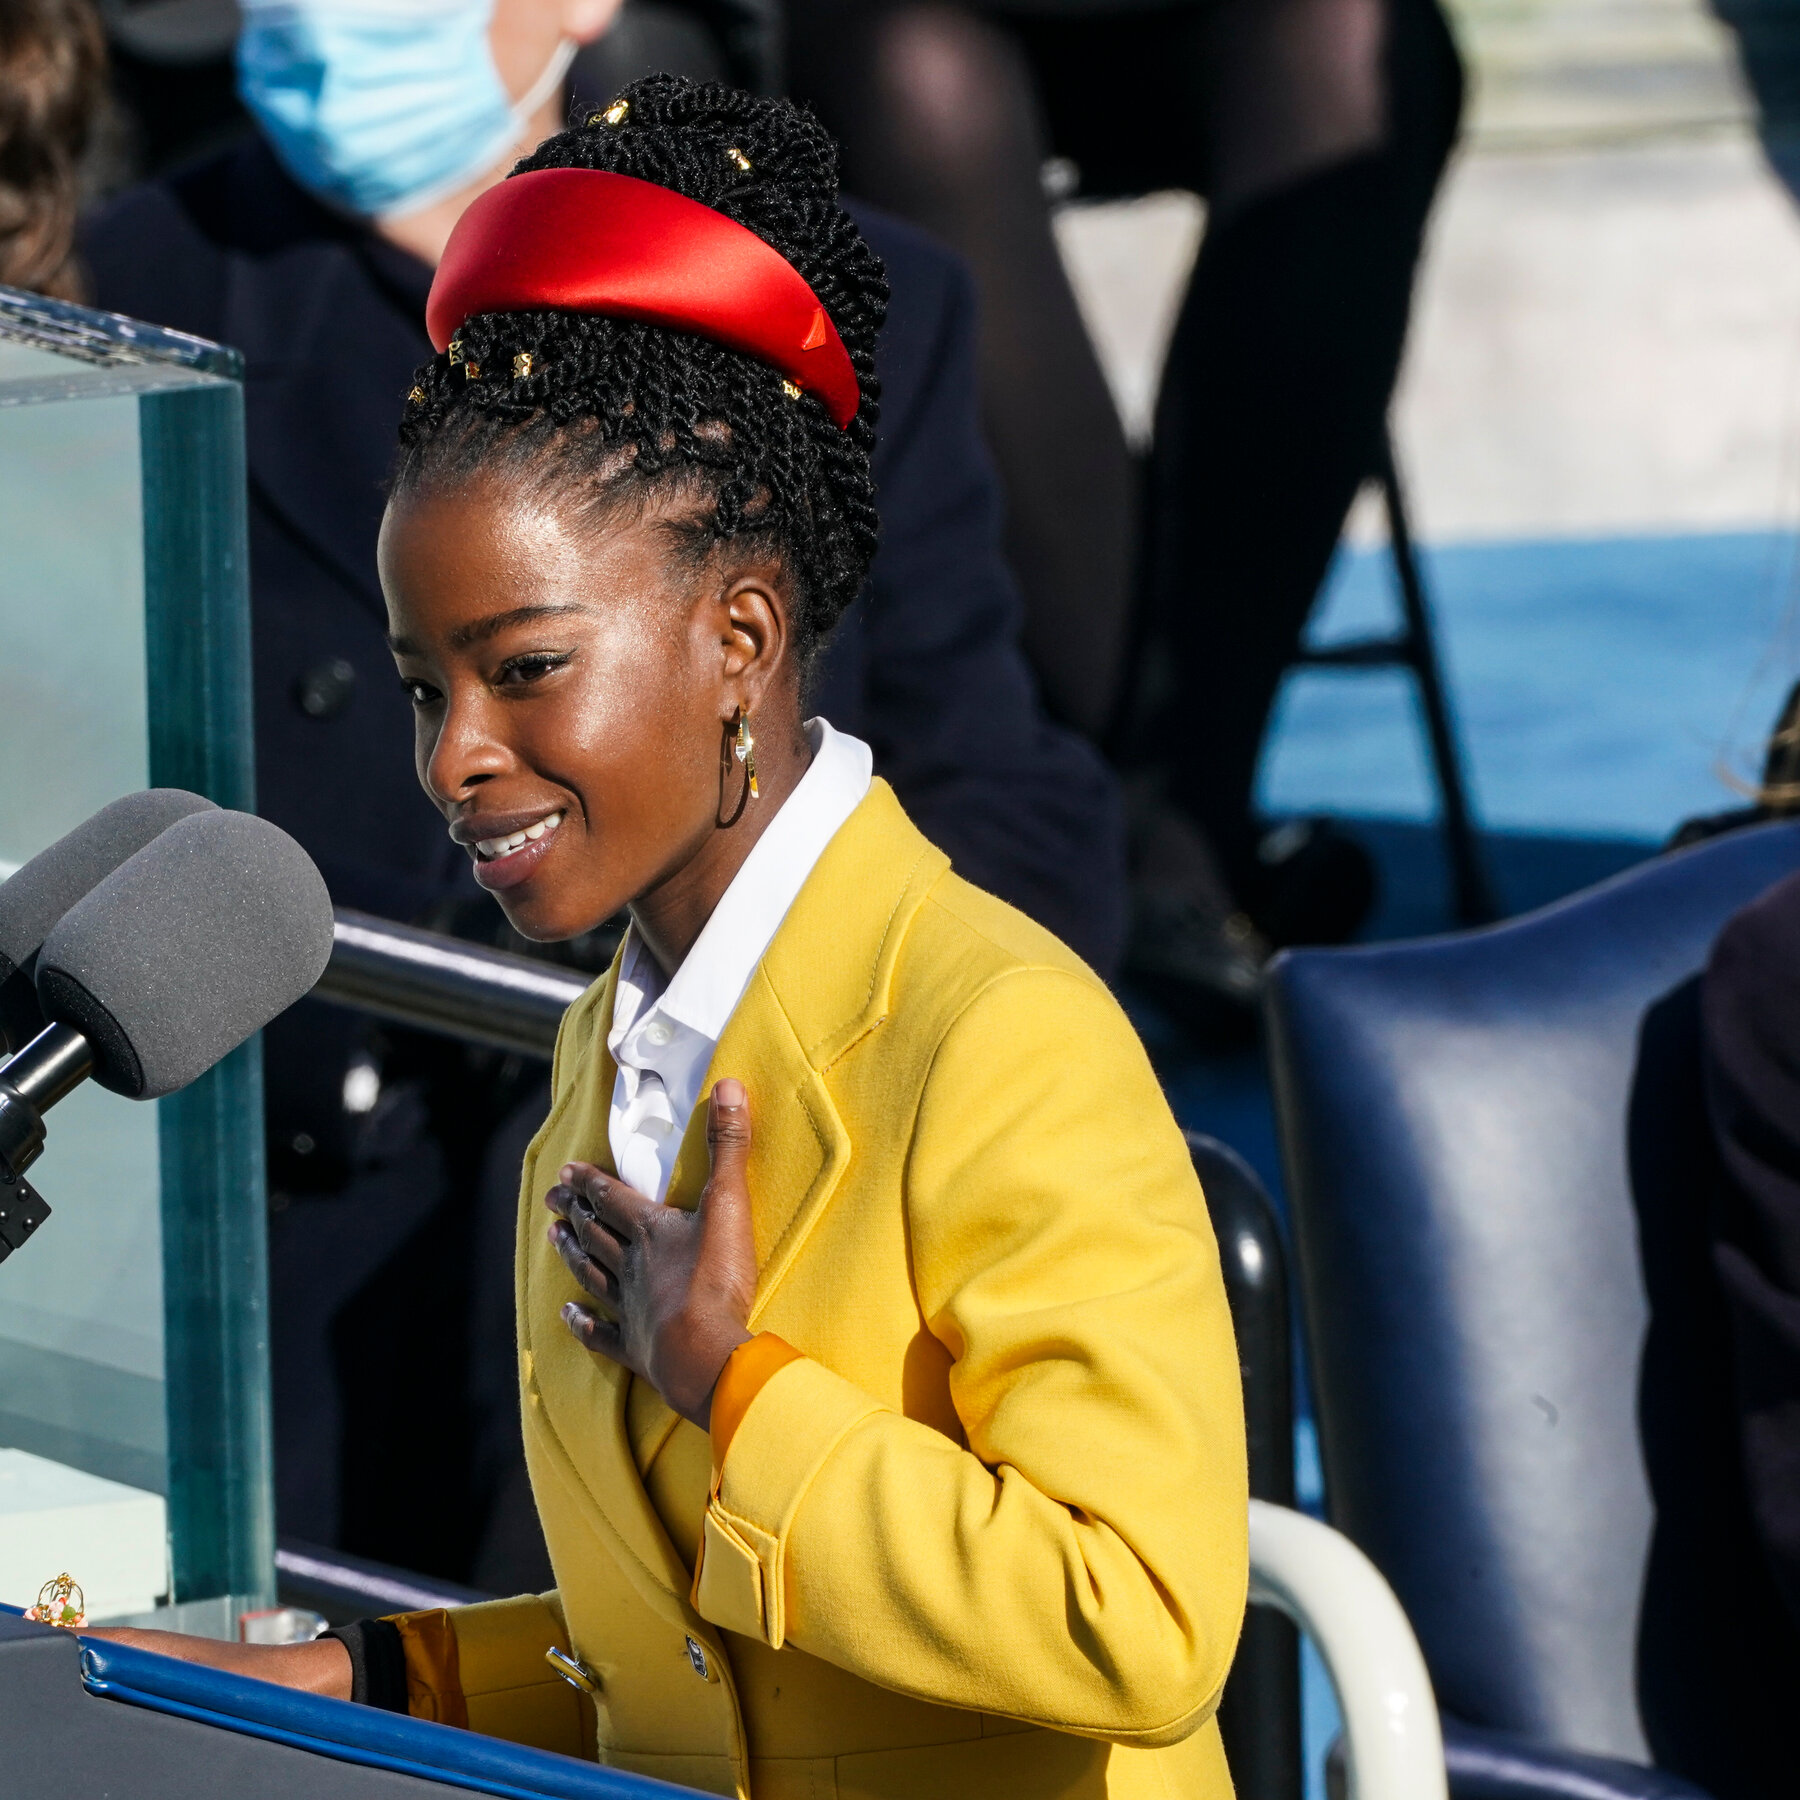 Young poet Amanda Gorman speaks out at the inauguration